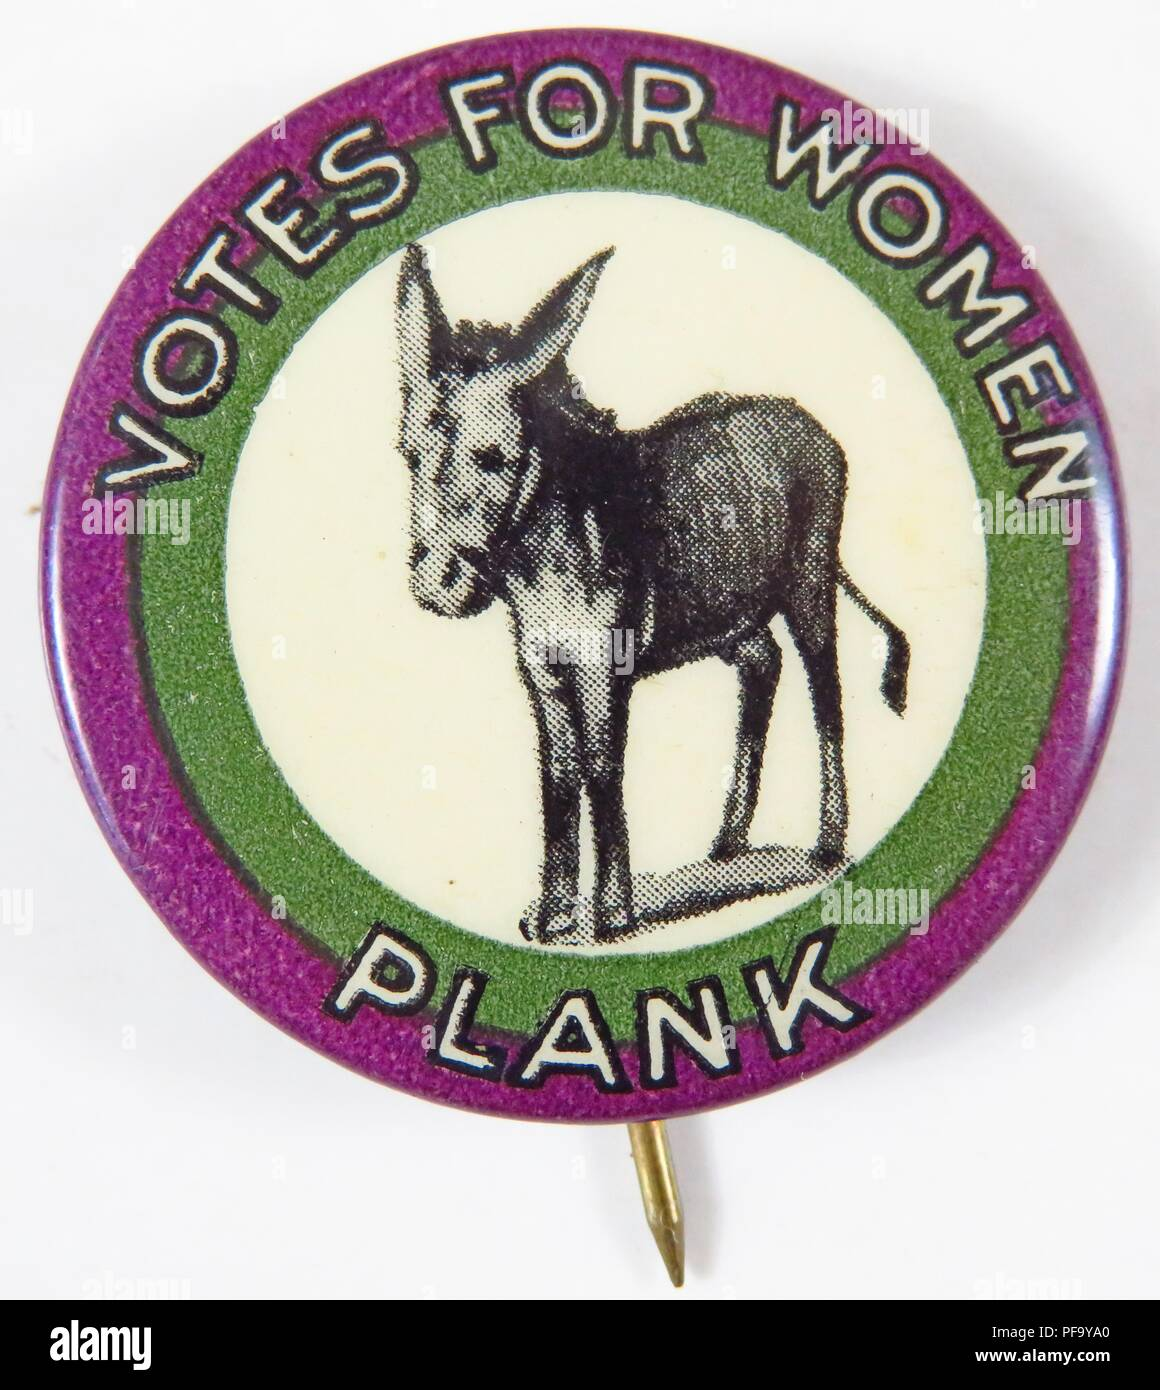 Purple, green and white, celluloid suffrage pin, with donkey symbol at center and the words 'Votes for Women Plank' (plank meaning platform) circling the outer rim, issued by the Connecticut Woman Suffrage Association (CWSA) for the American market, 1916. () - Stock Image